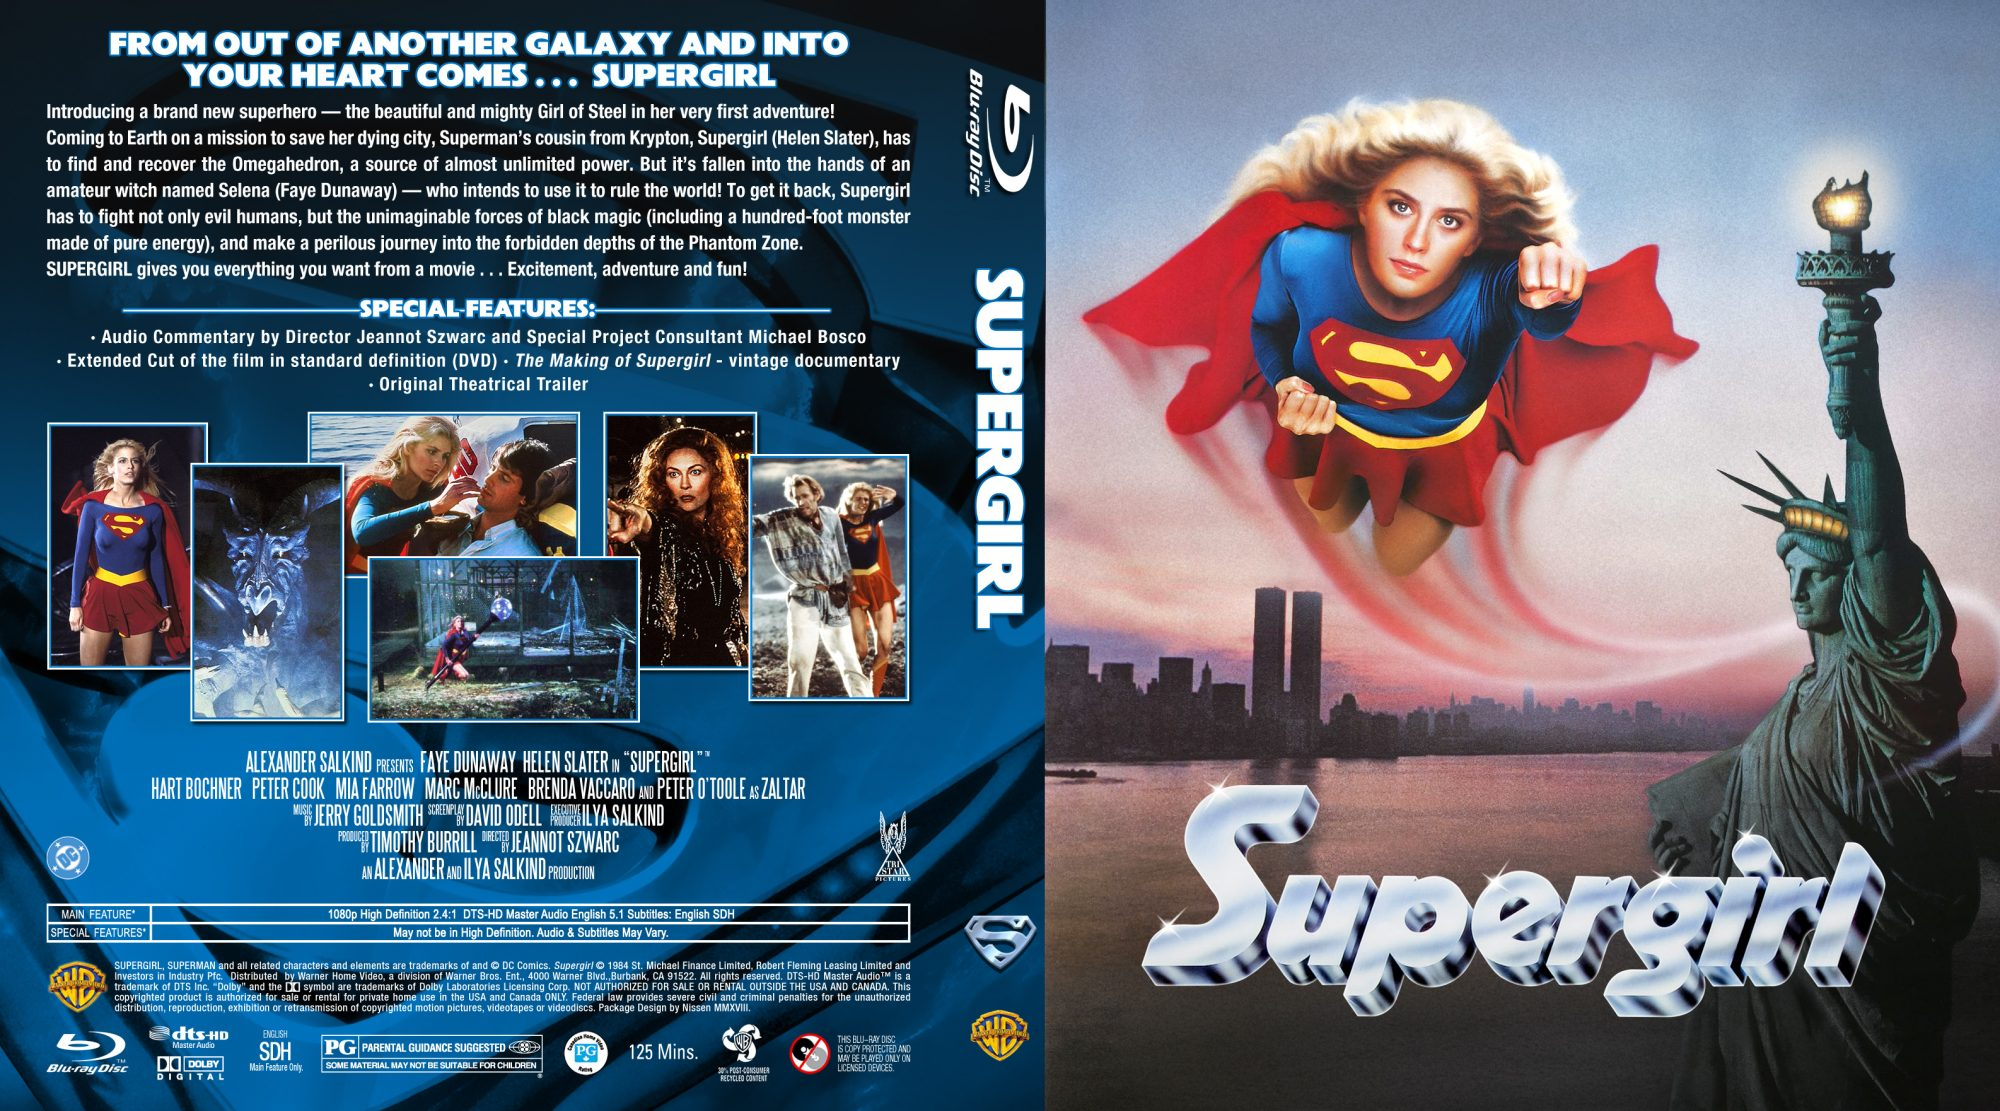 Supergirl JA Custom US poster BD by Nissen